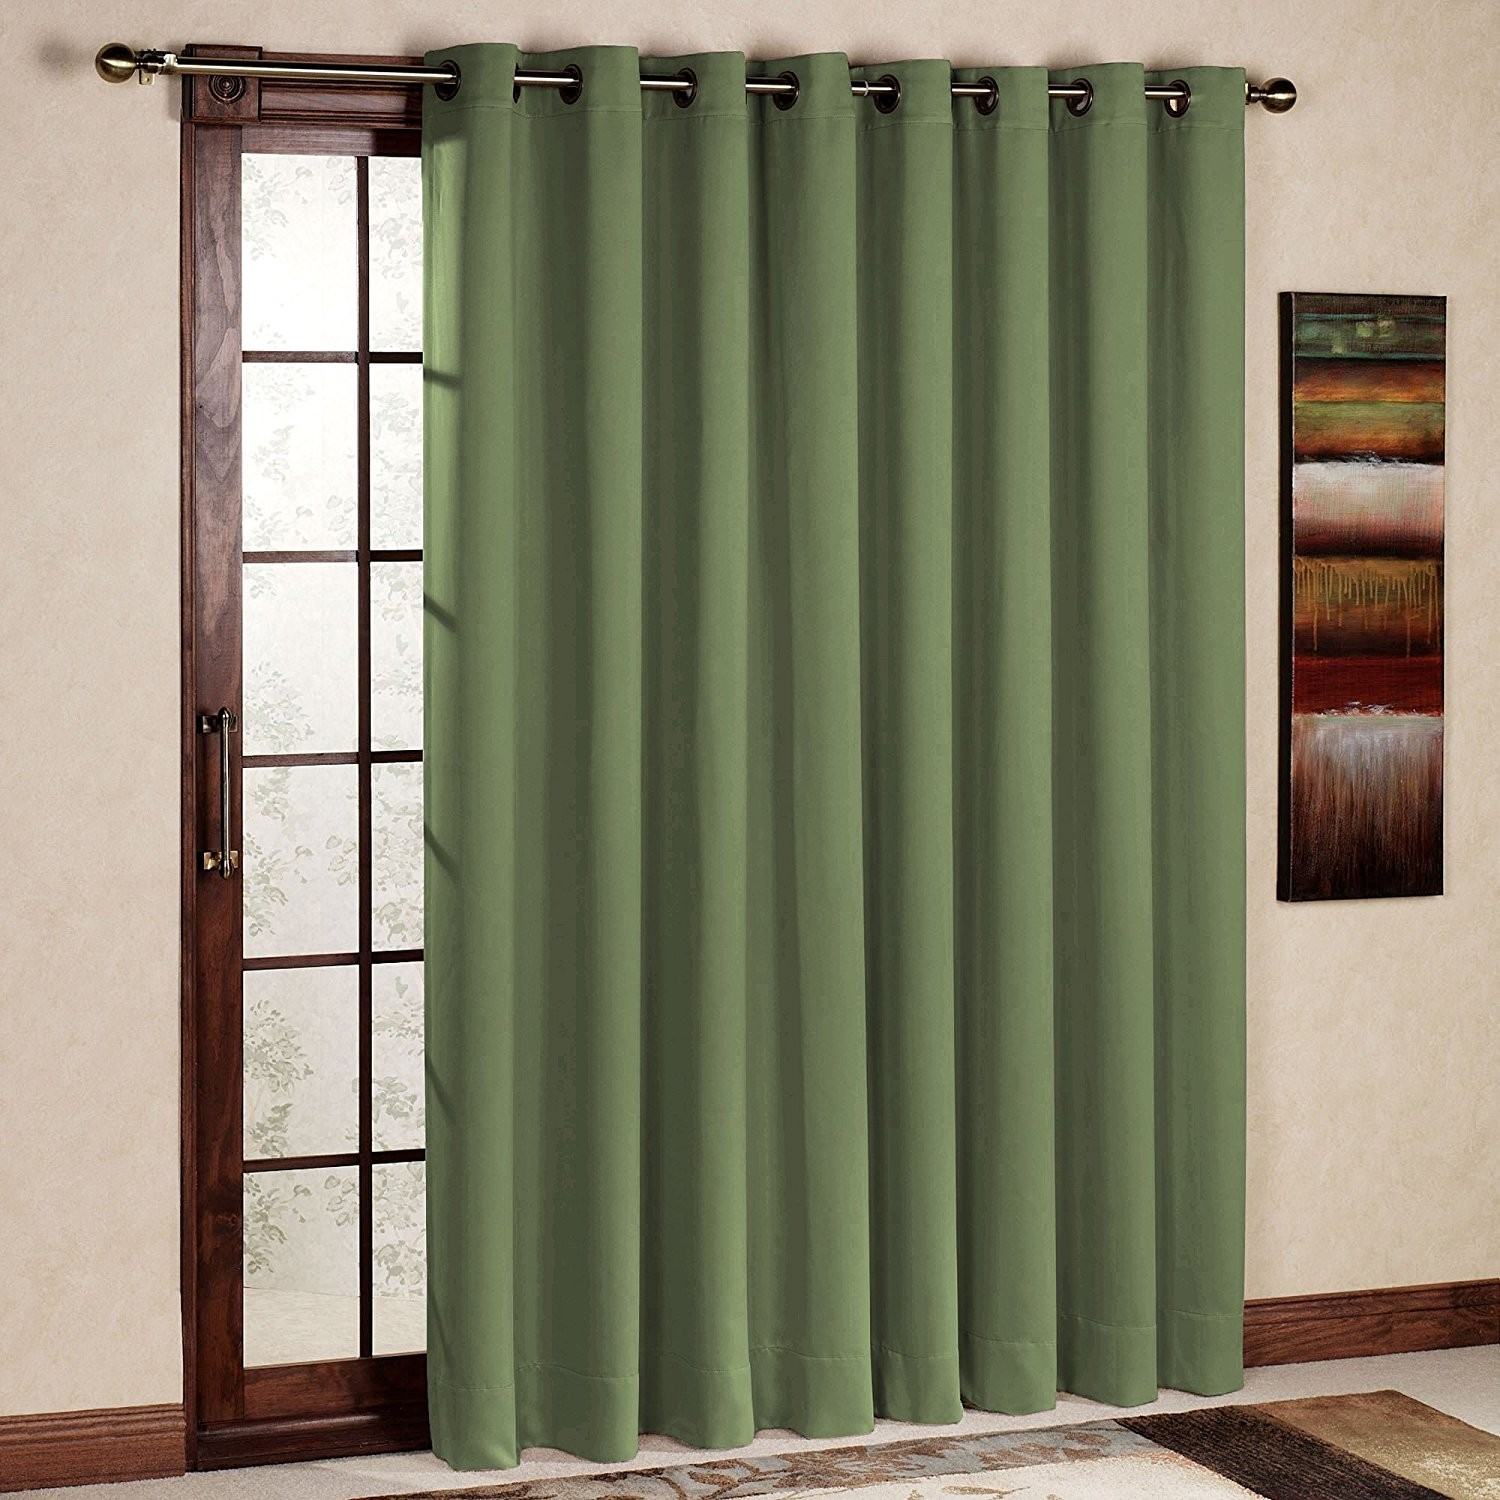 Rhf Thermal Insulated Blackout Patio Door Curtain Panel Sliding Regarding Thermal Door Curtains (Image 13 of 15)